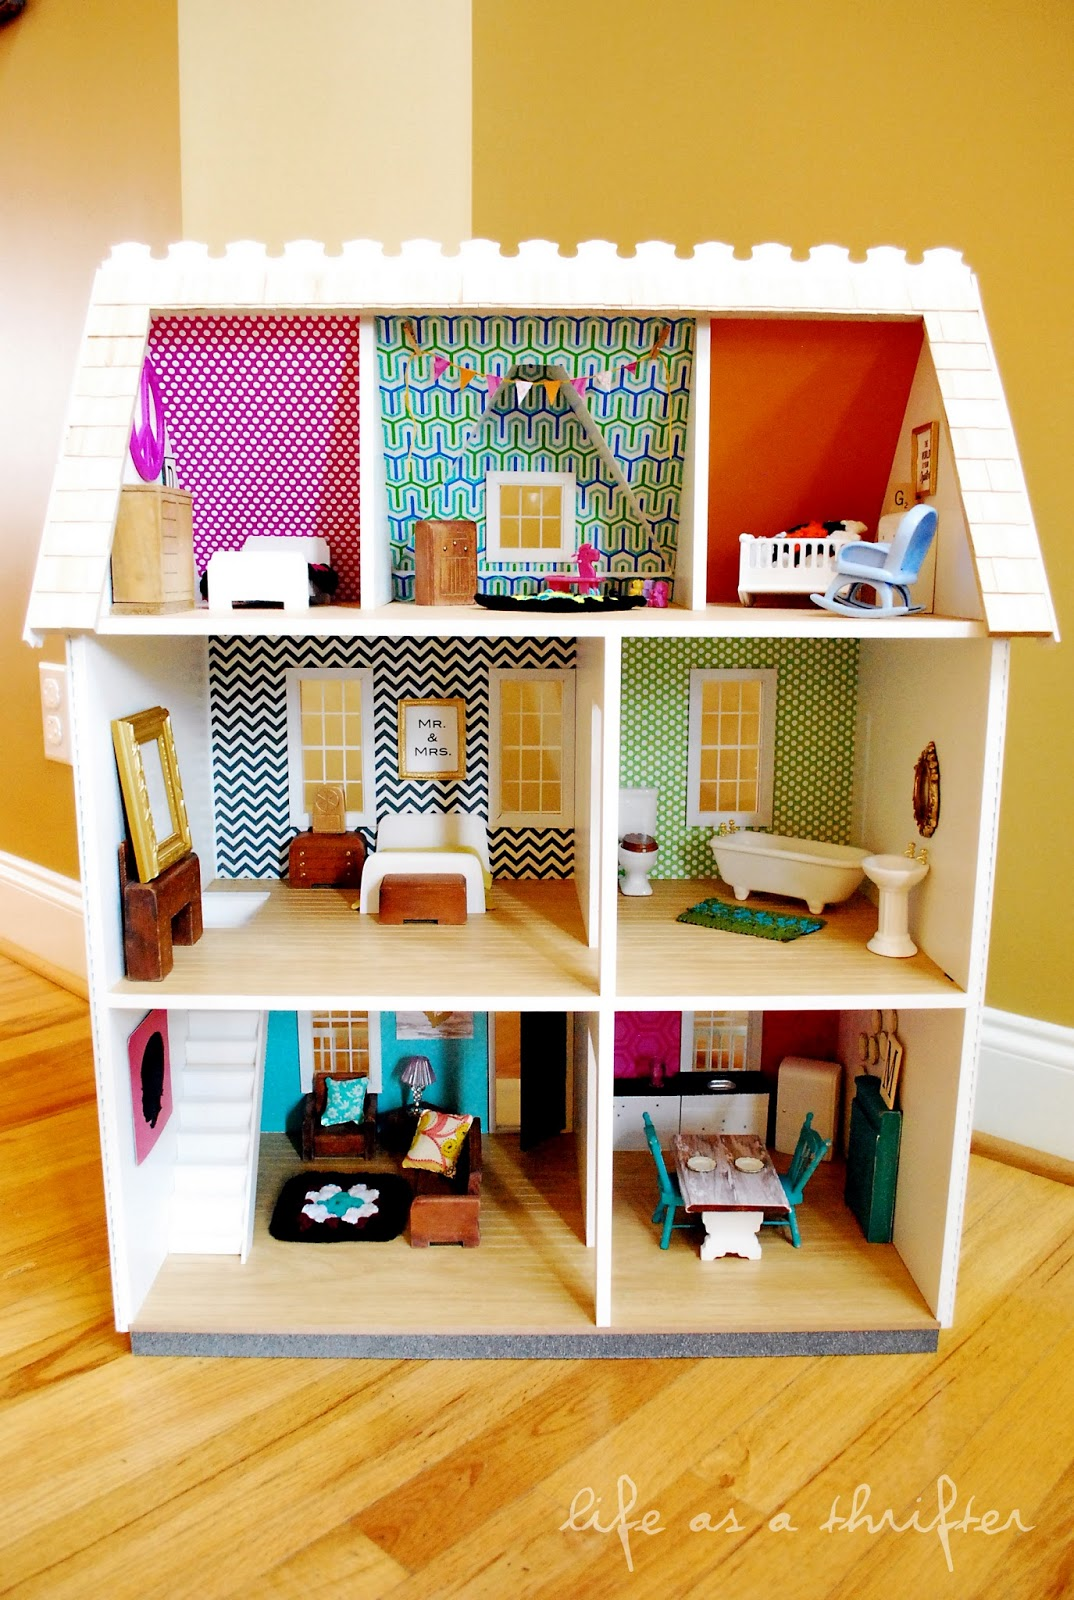 Life as a thrifter dollhouse details diy wall art - Diy decorating ...